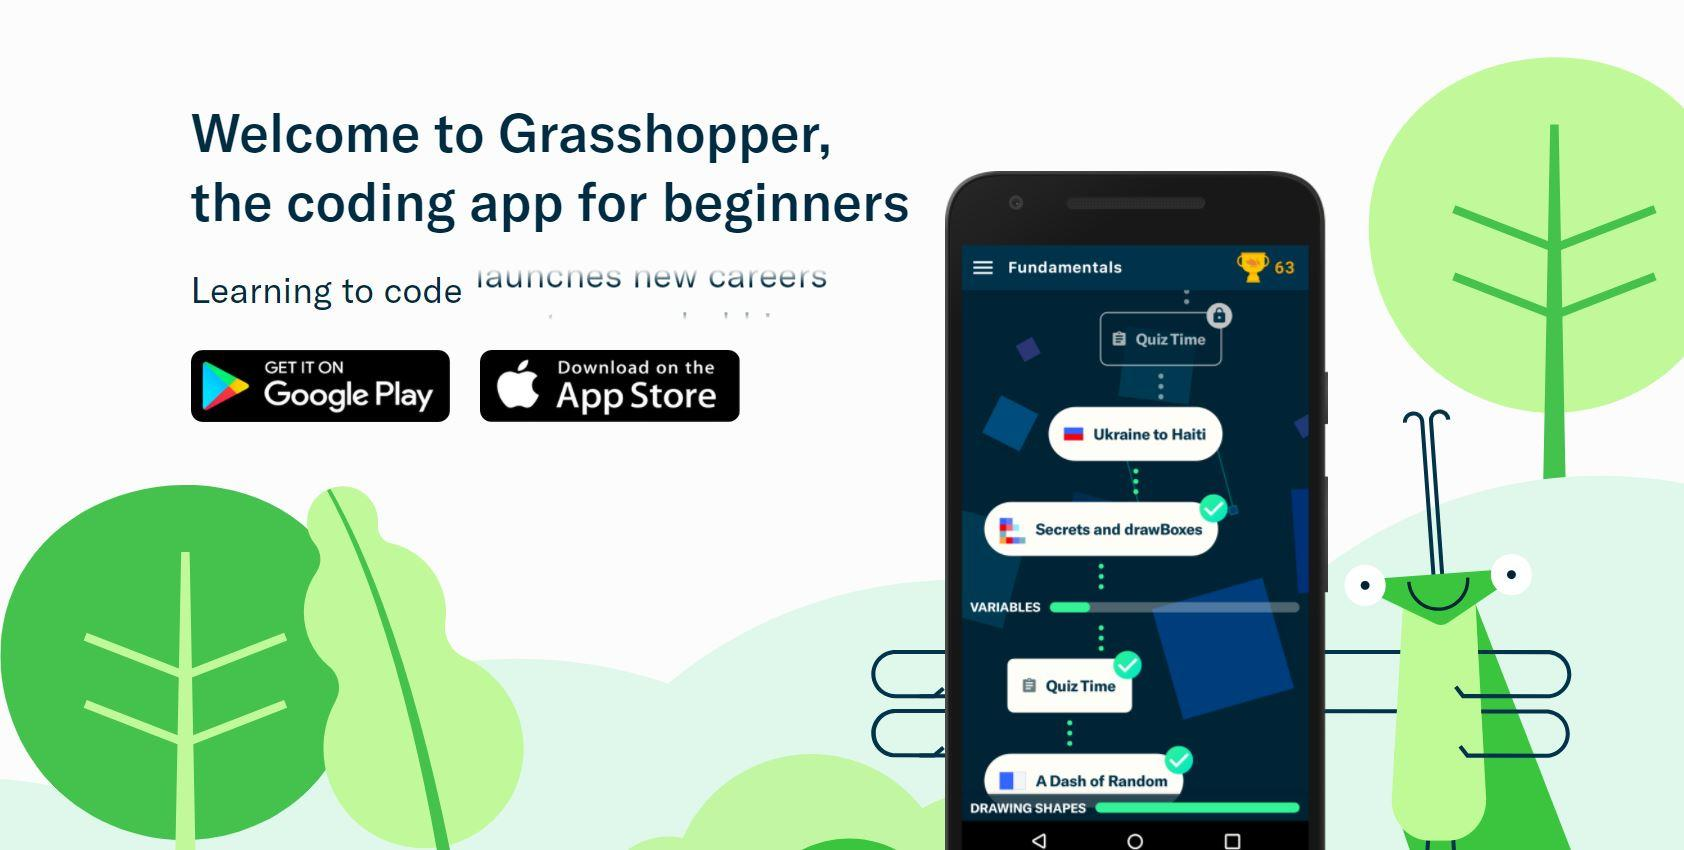 Dc5m United States It In English Created At 2018 04 20 0012 Everycircuit Android Apps On Google Play To Help Beginners Learn Coding Their Smartphones Has Launched A New Code App Called Grasshopper Been By Team